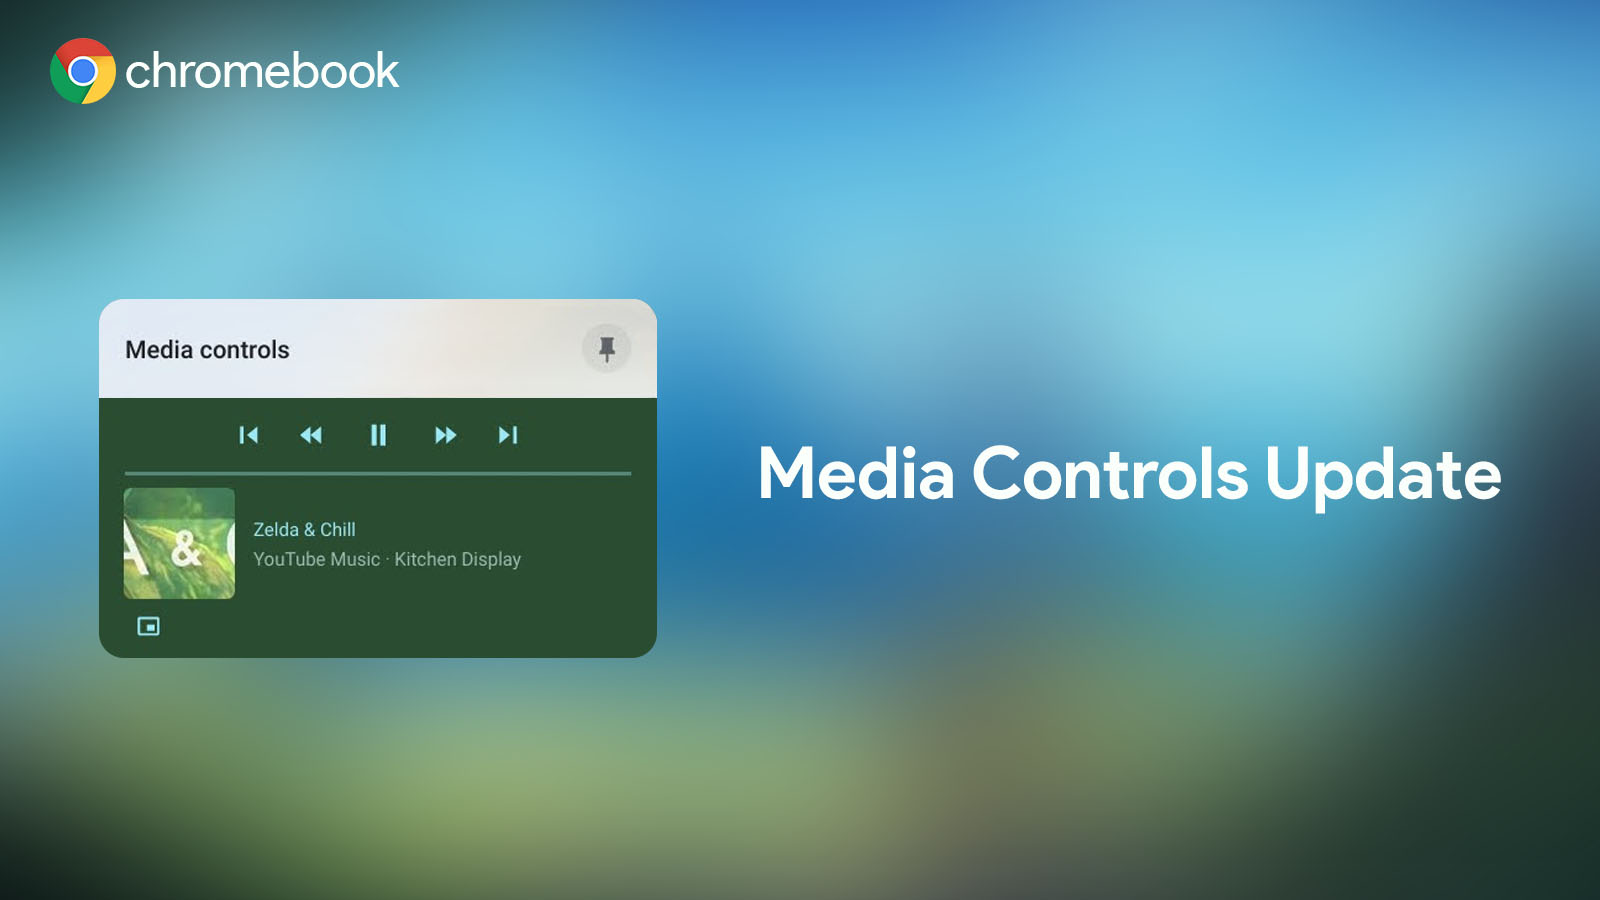 Chrome and Chrome OS global media controls go topsy-turvy in latest update